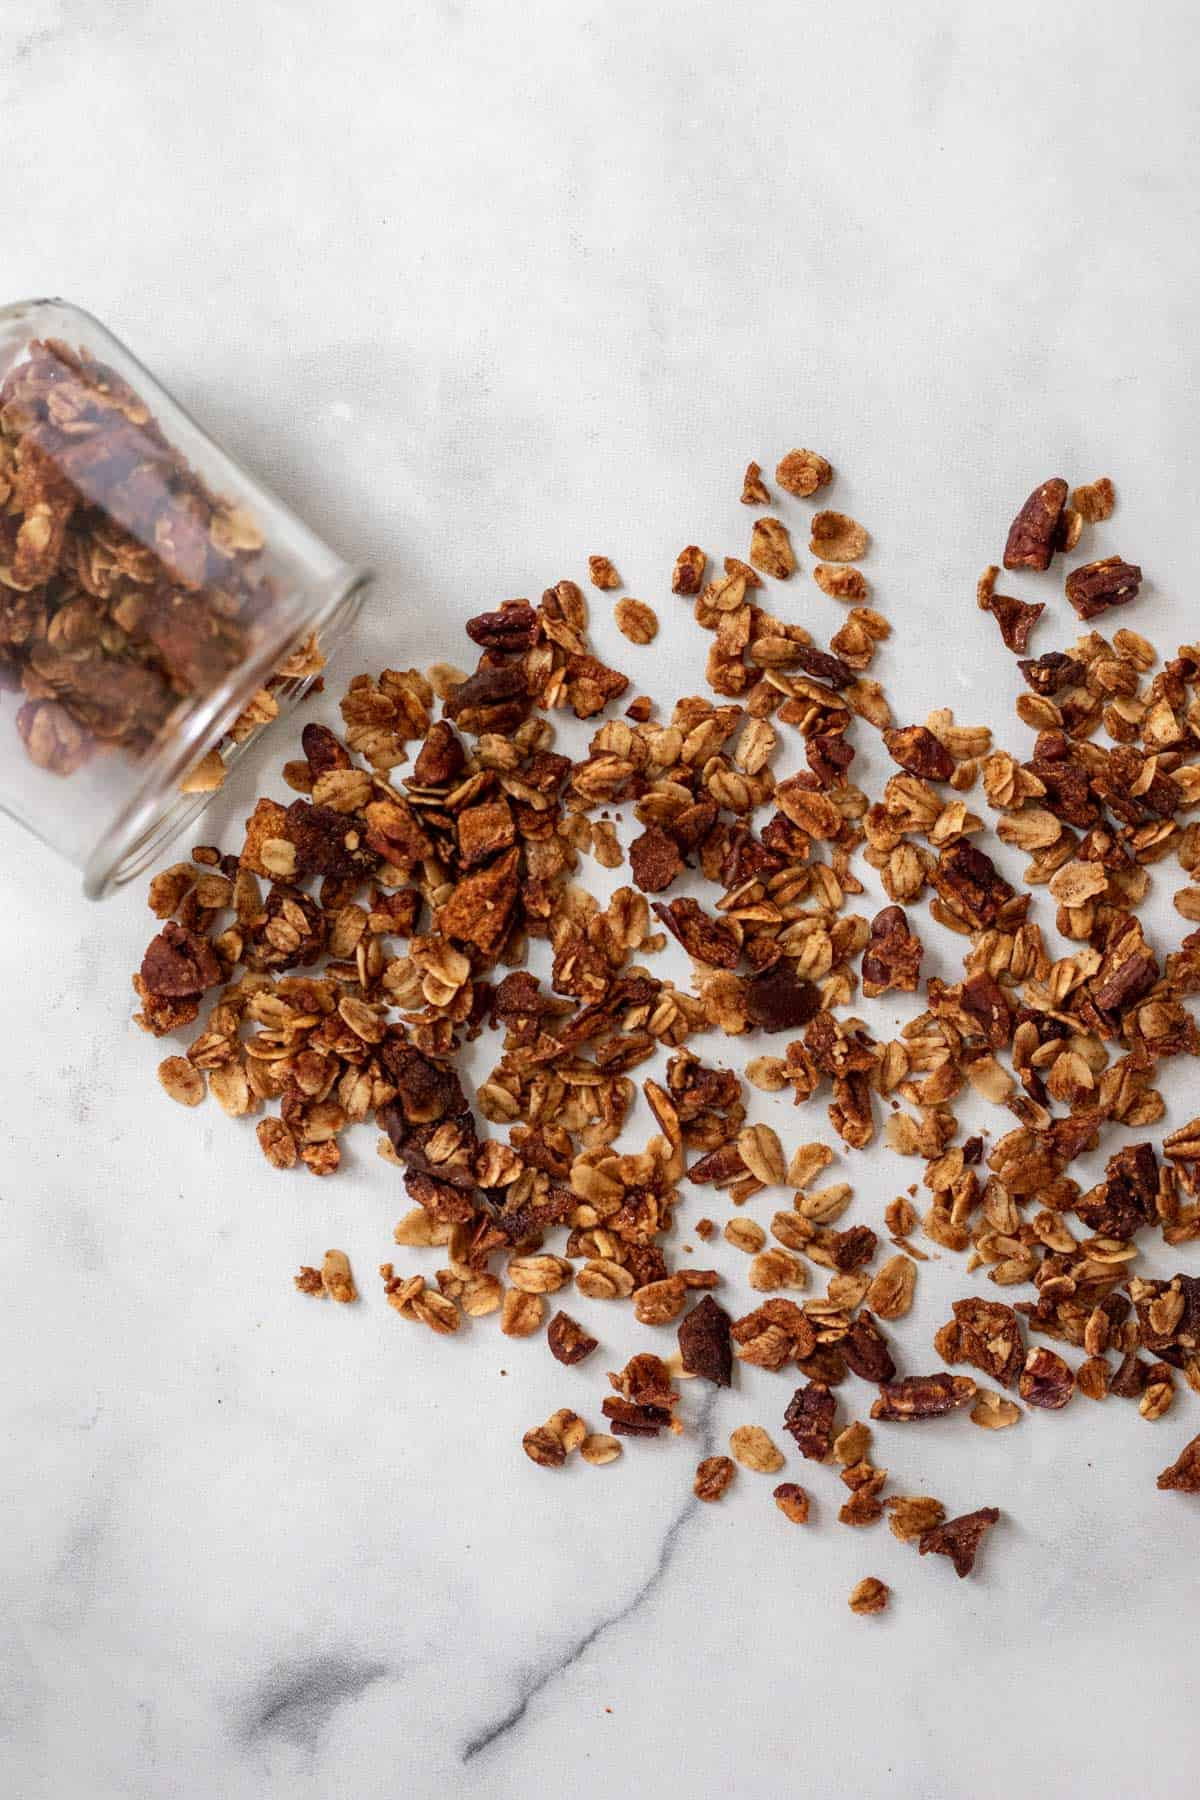 Baked granola spread spilled from a jar and spilled out across a white backdrop.